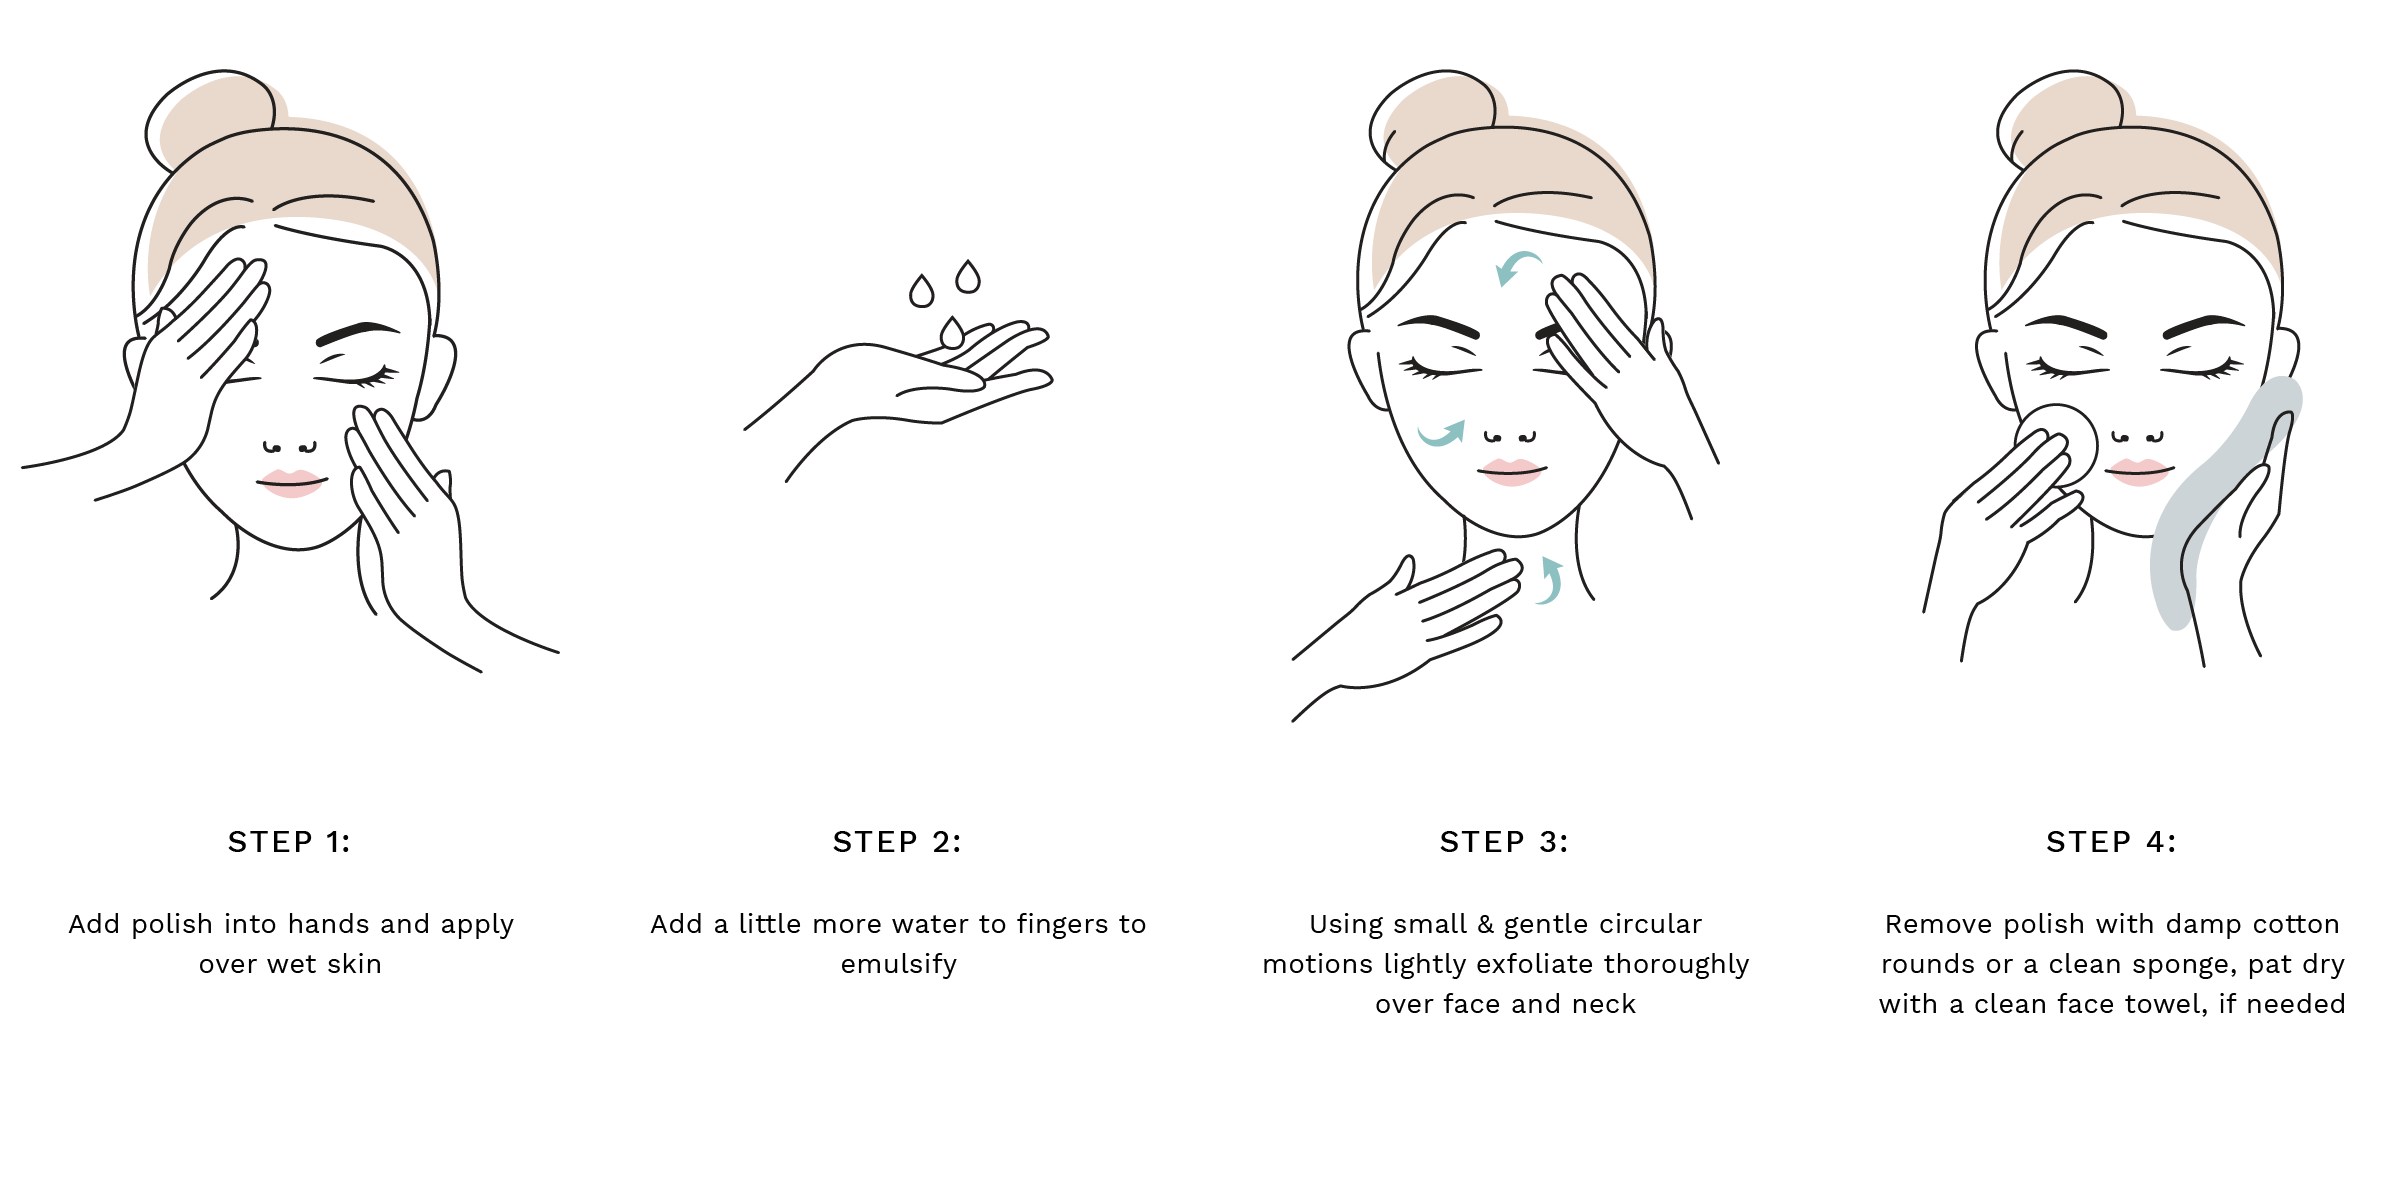 Step 1: Add polish into hands and apply over wet skin  Step 2: Add a little more water to fingers to help emulsify Step 3: Using small & gentle circular motions lightly exfoliate thoroughly over face and neck Step 4: Remove polish with damp cotton rounds or a clean sponge, pat dry with a clean face towel, if needed Step 4: Remove polish with damp cotton rounds or a clean sponge, pat dry with a clean face towel, if needed.